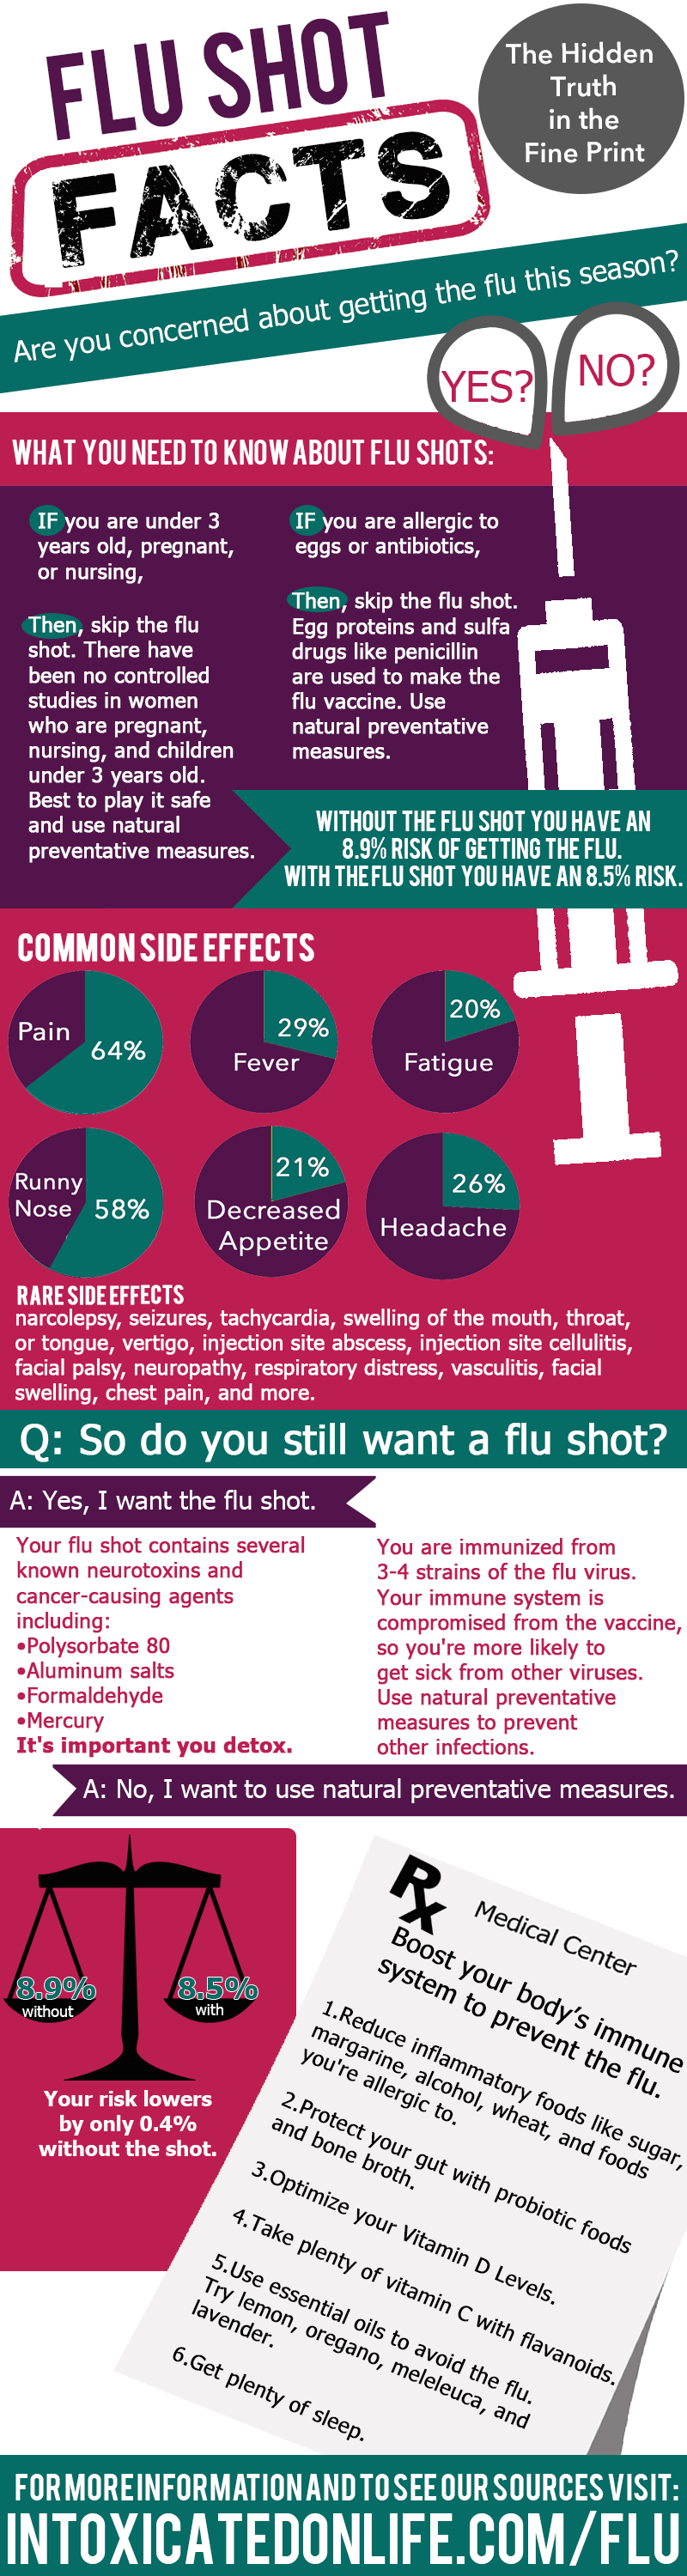 Flu Shots: Facts and Fiction